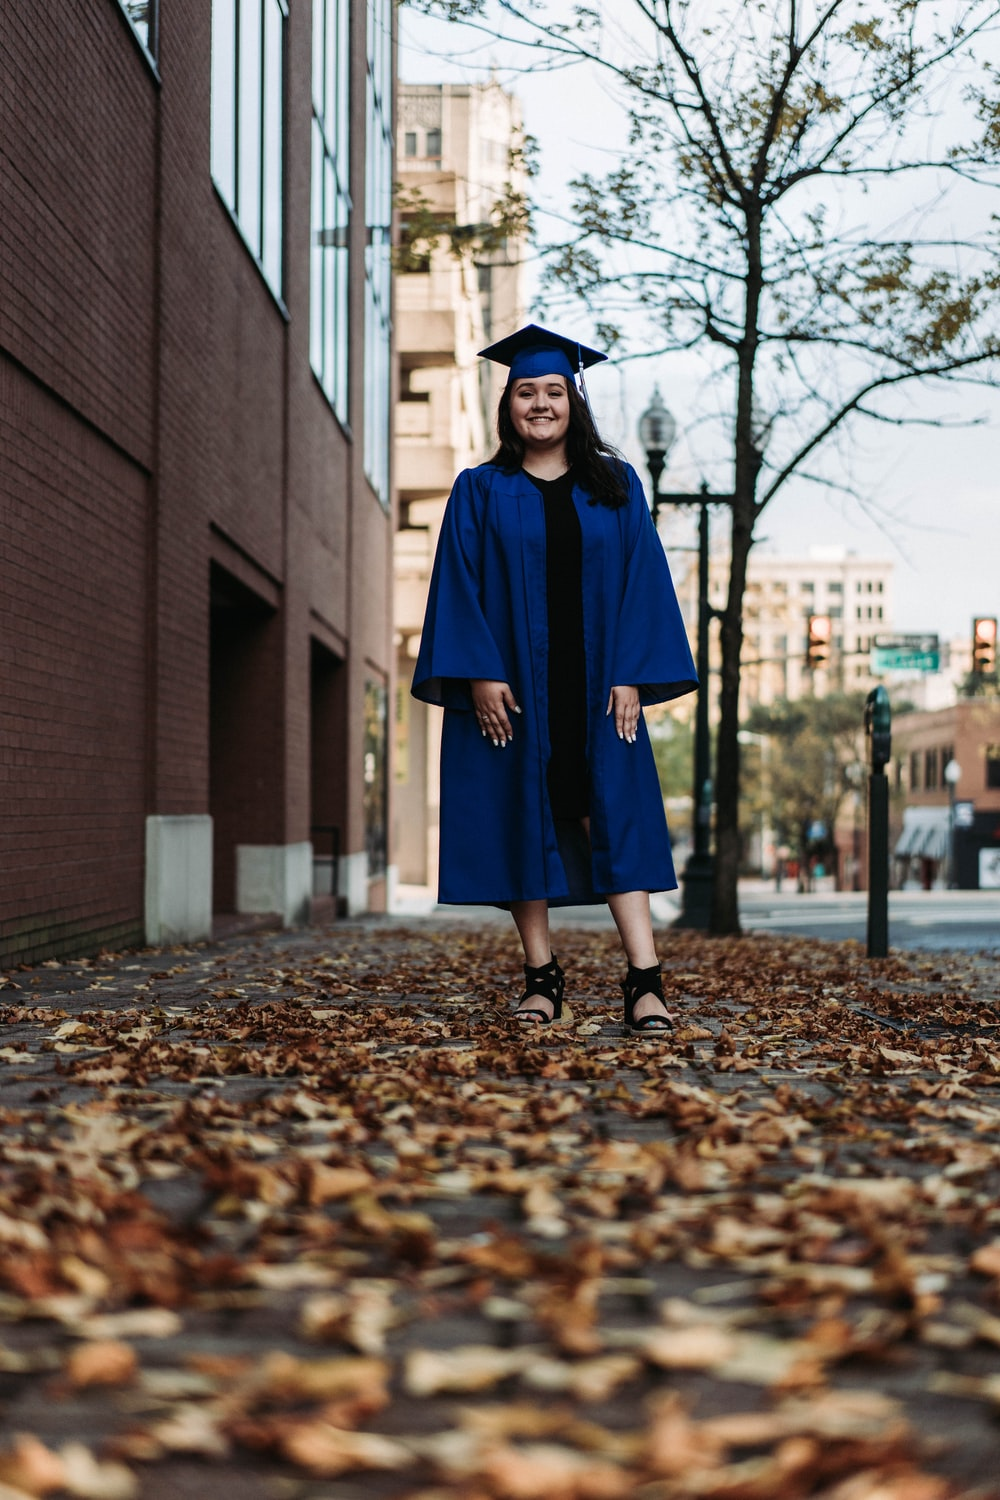 woman in blue academic dress standing on brown dried leaves during daytime